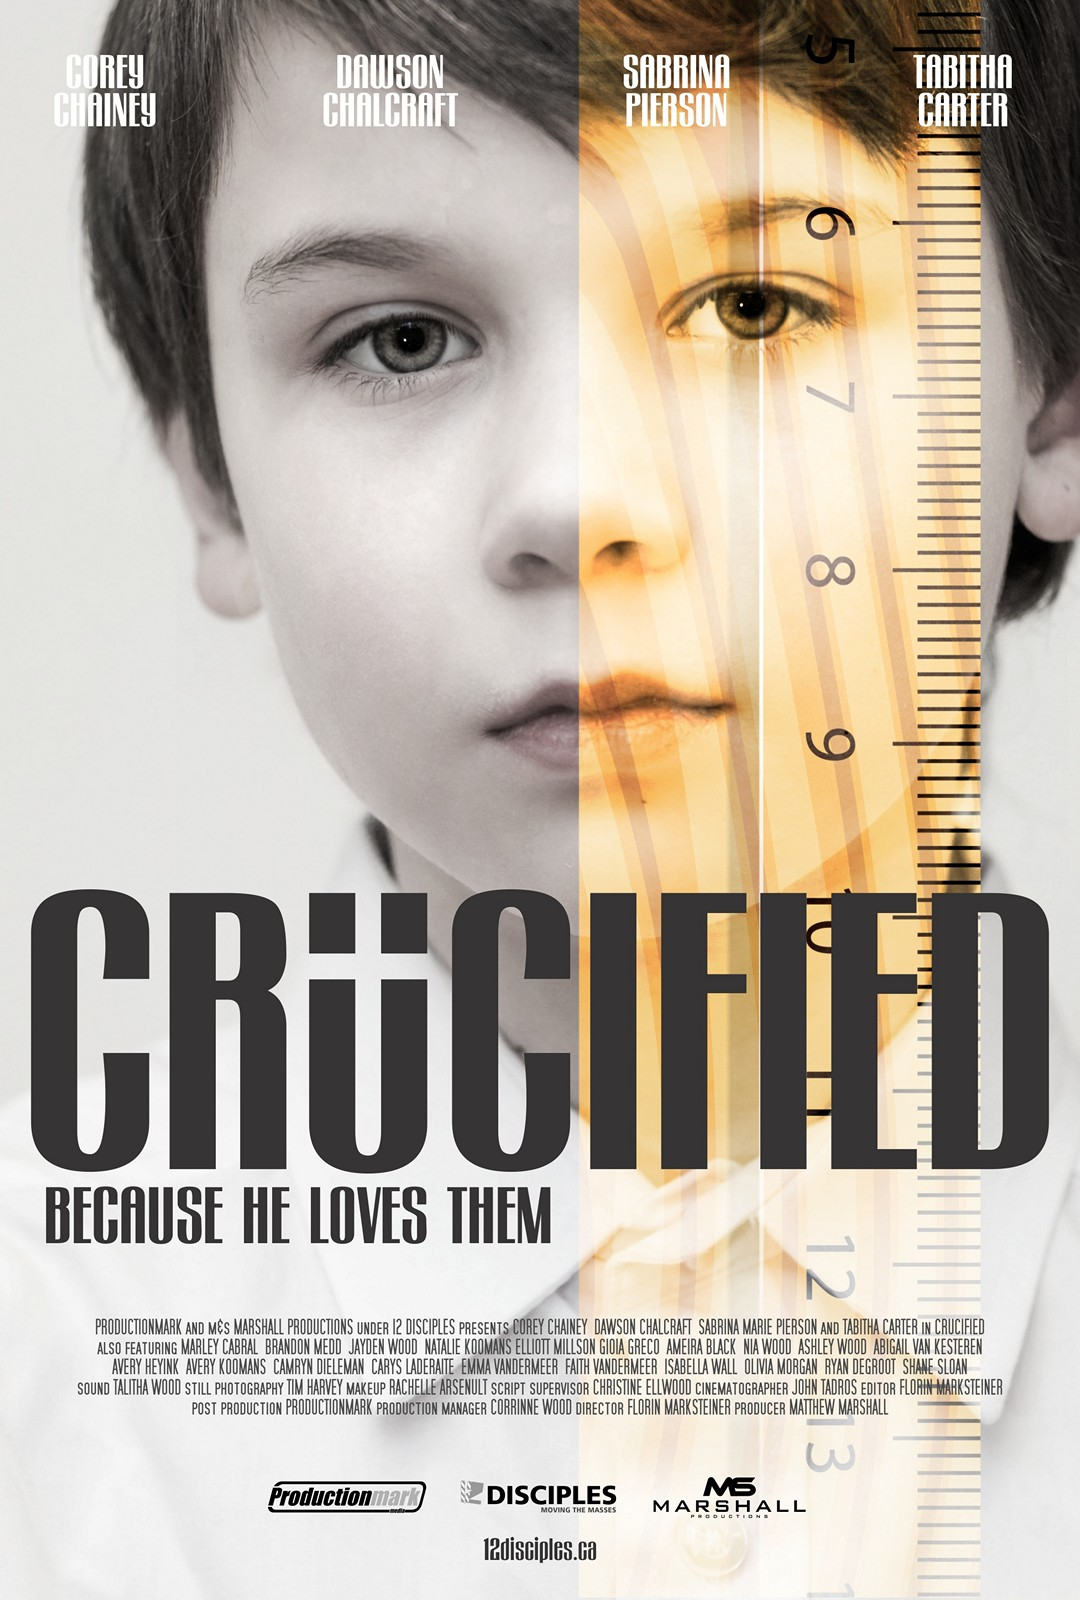 Productionmark-Services-Film-Poster-Design-Short-Film-Crucified